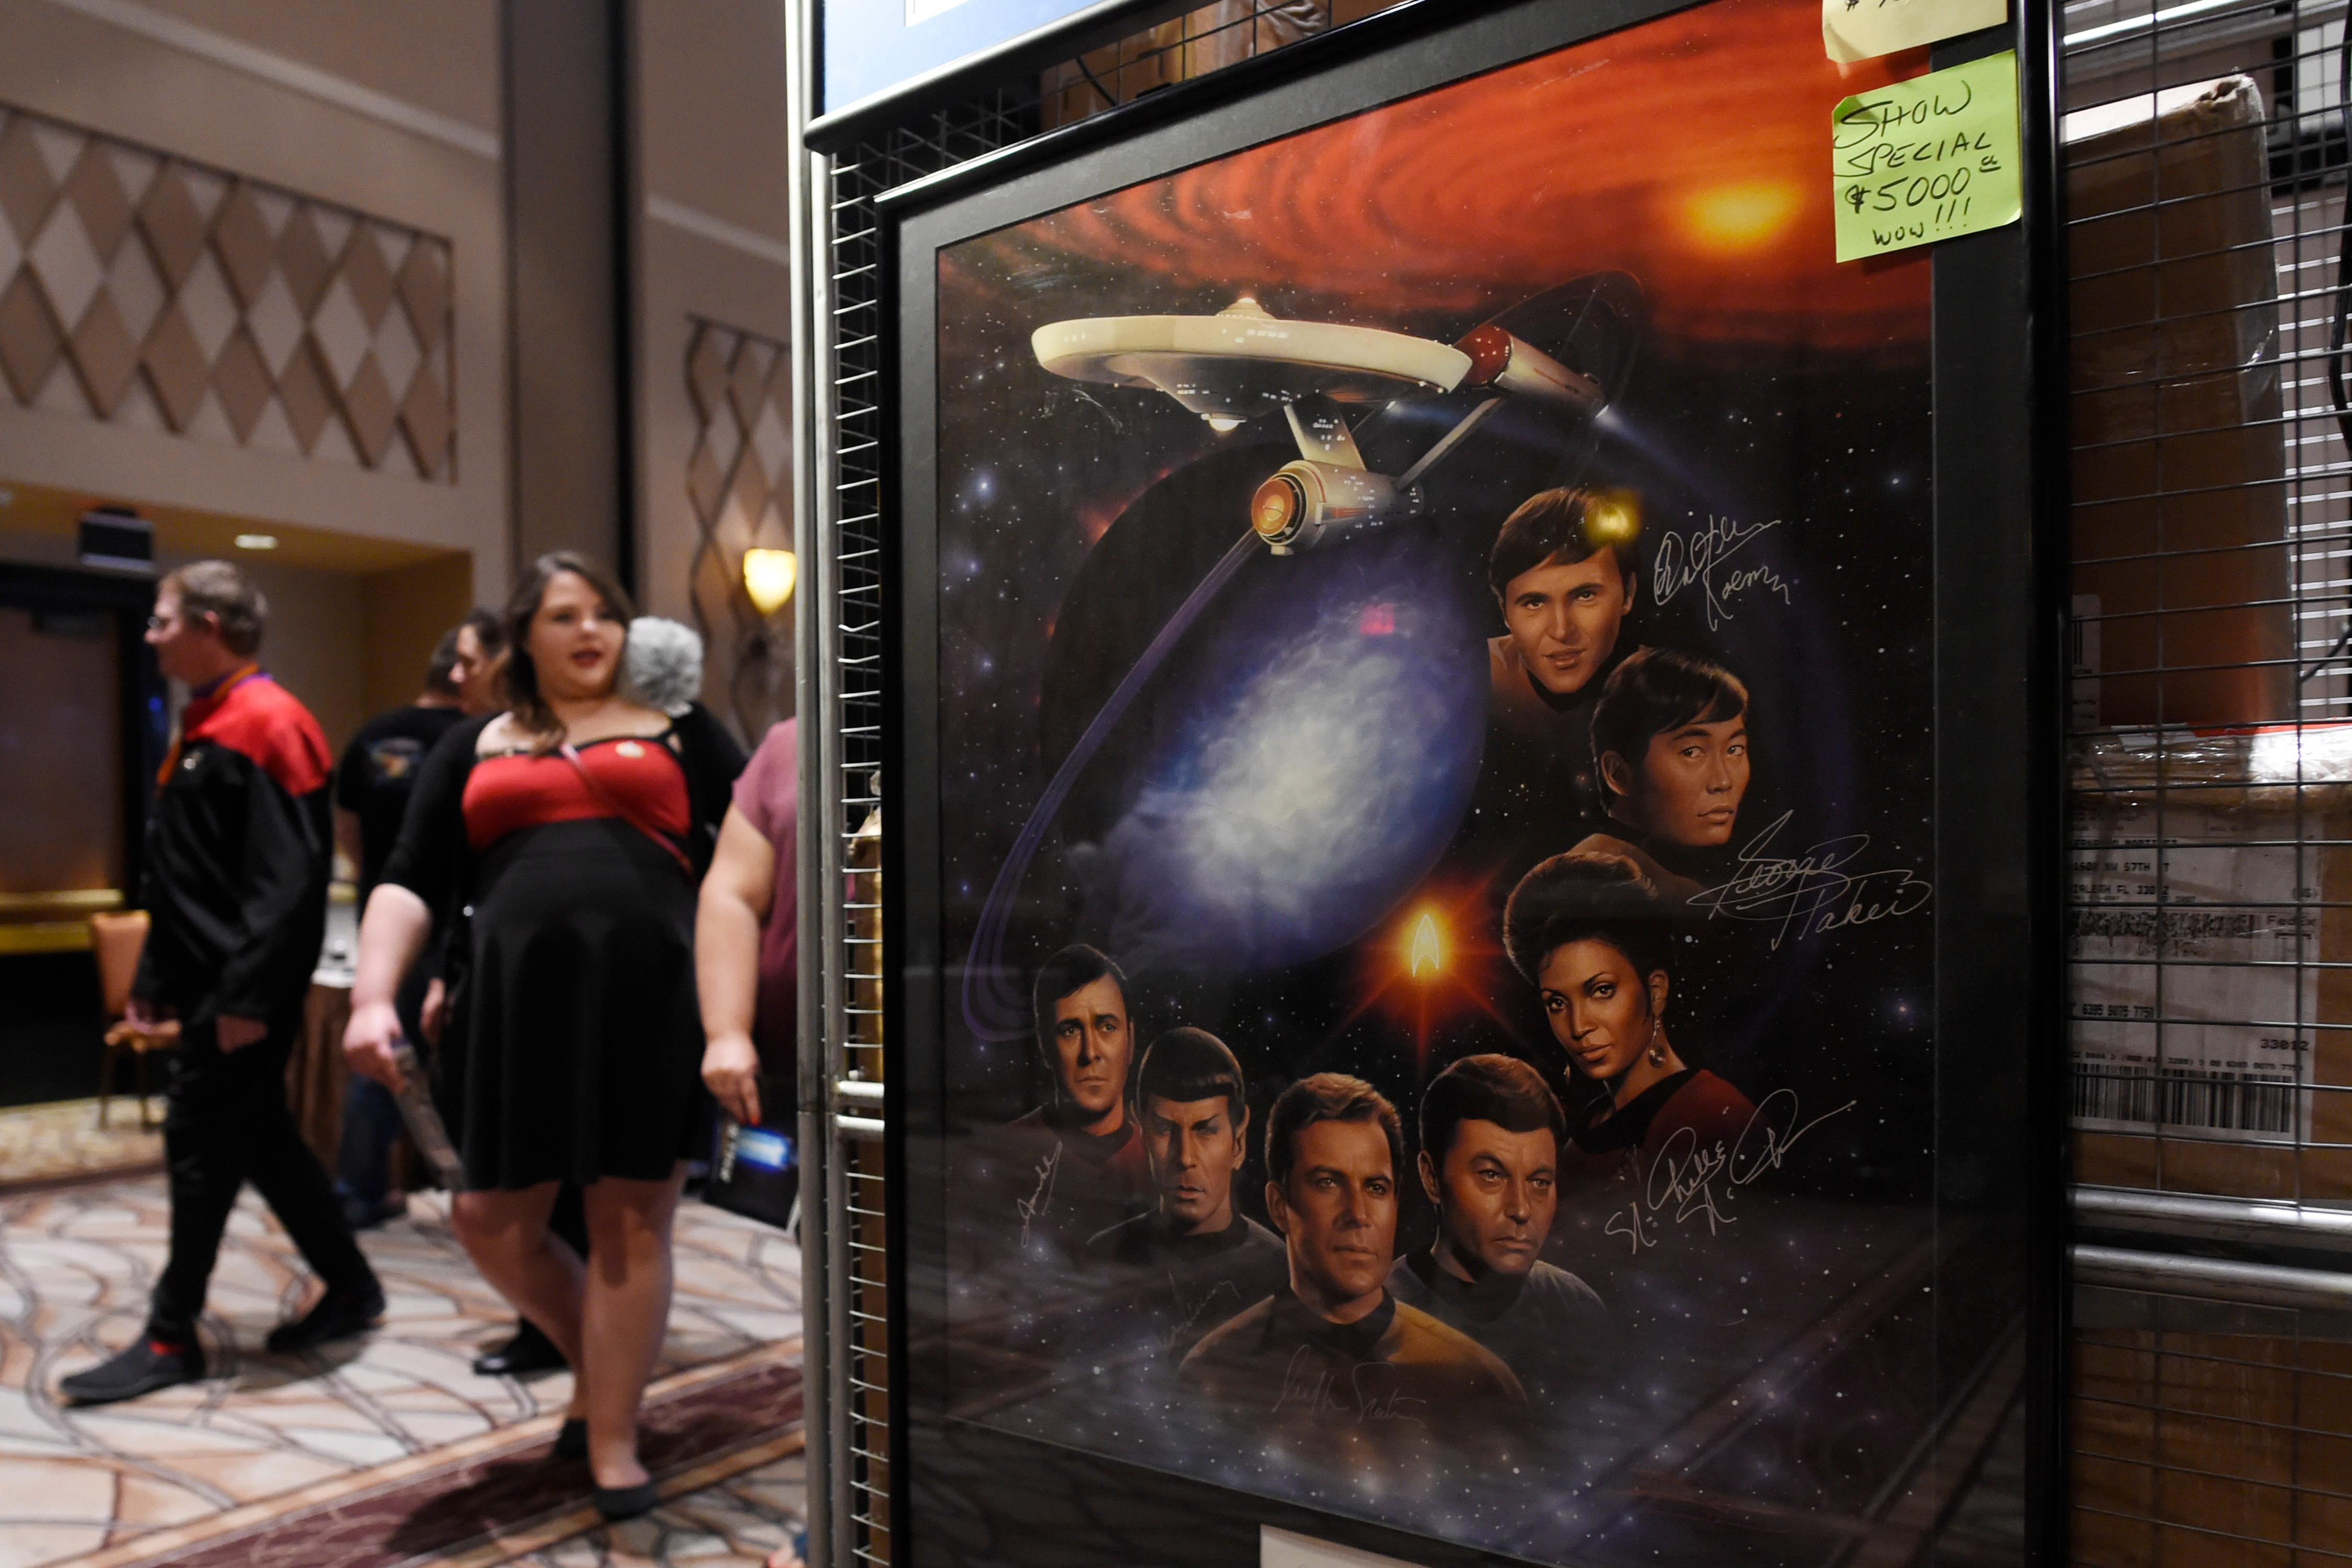 A poster signed by the original cast of Star Trek is seen on sale during the 16th annual Las Vegas Star Trek Convention Saturday, August 5, 2017, at the Rio.  CREDIT: Sam Morris/Las Vegas News Bureau